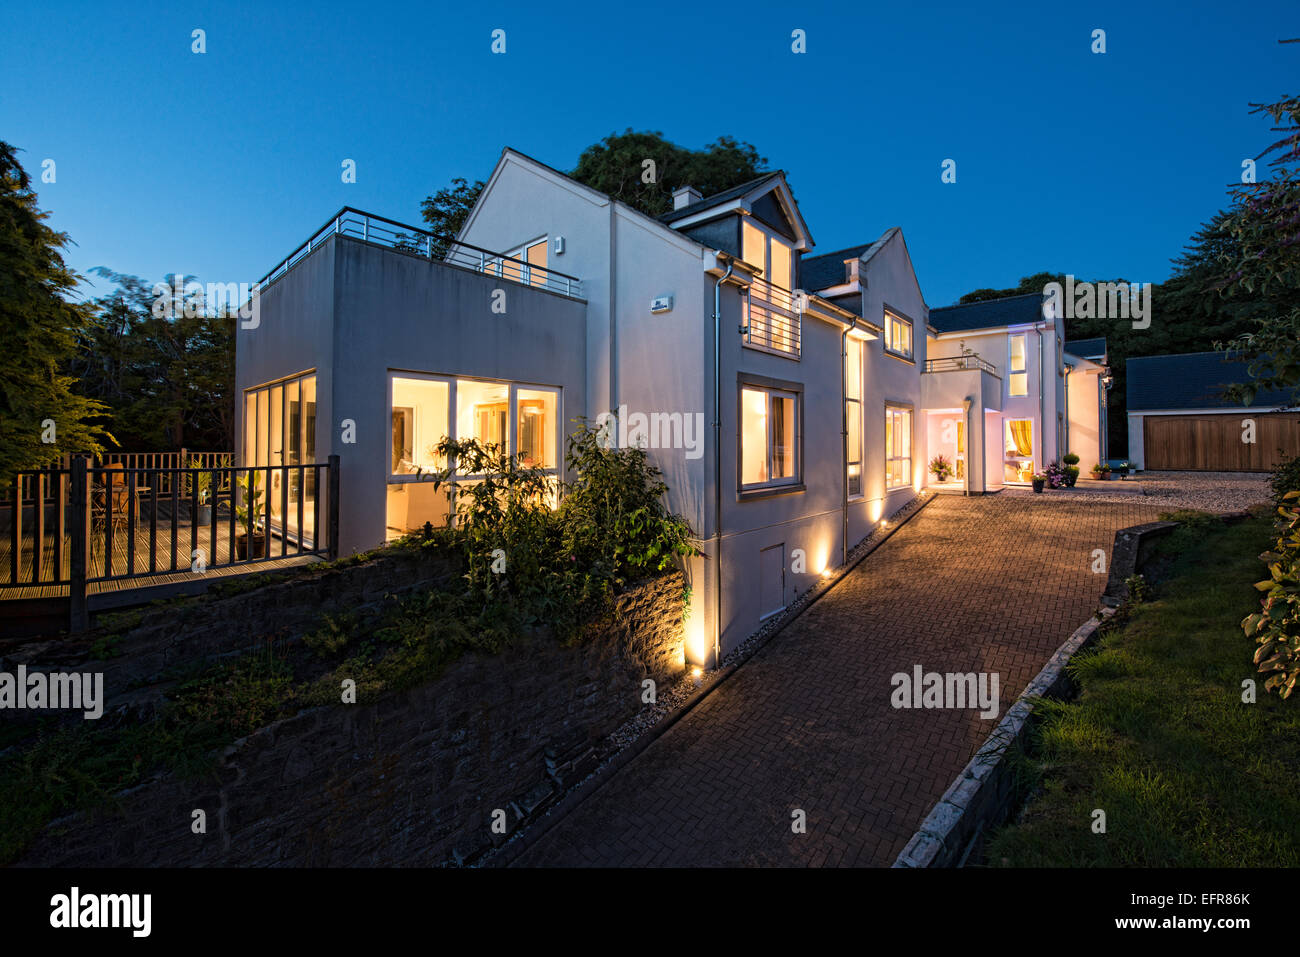 An aspirational, detached, self build home with all lights ablaze.Just after sunset on a clear Evening. UK - Stock Image